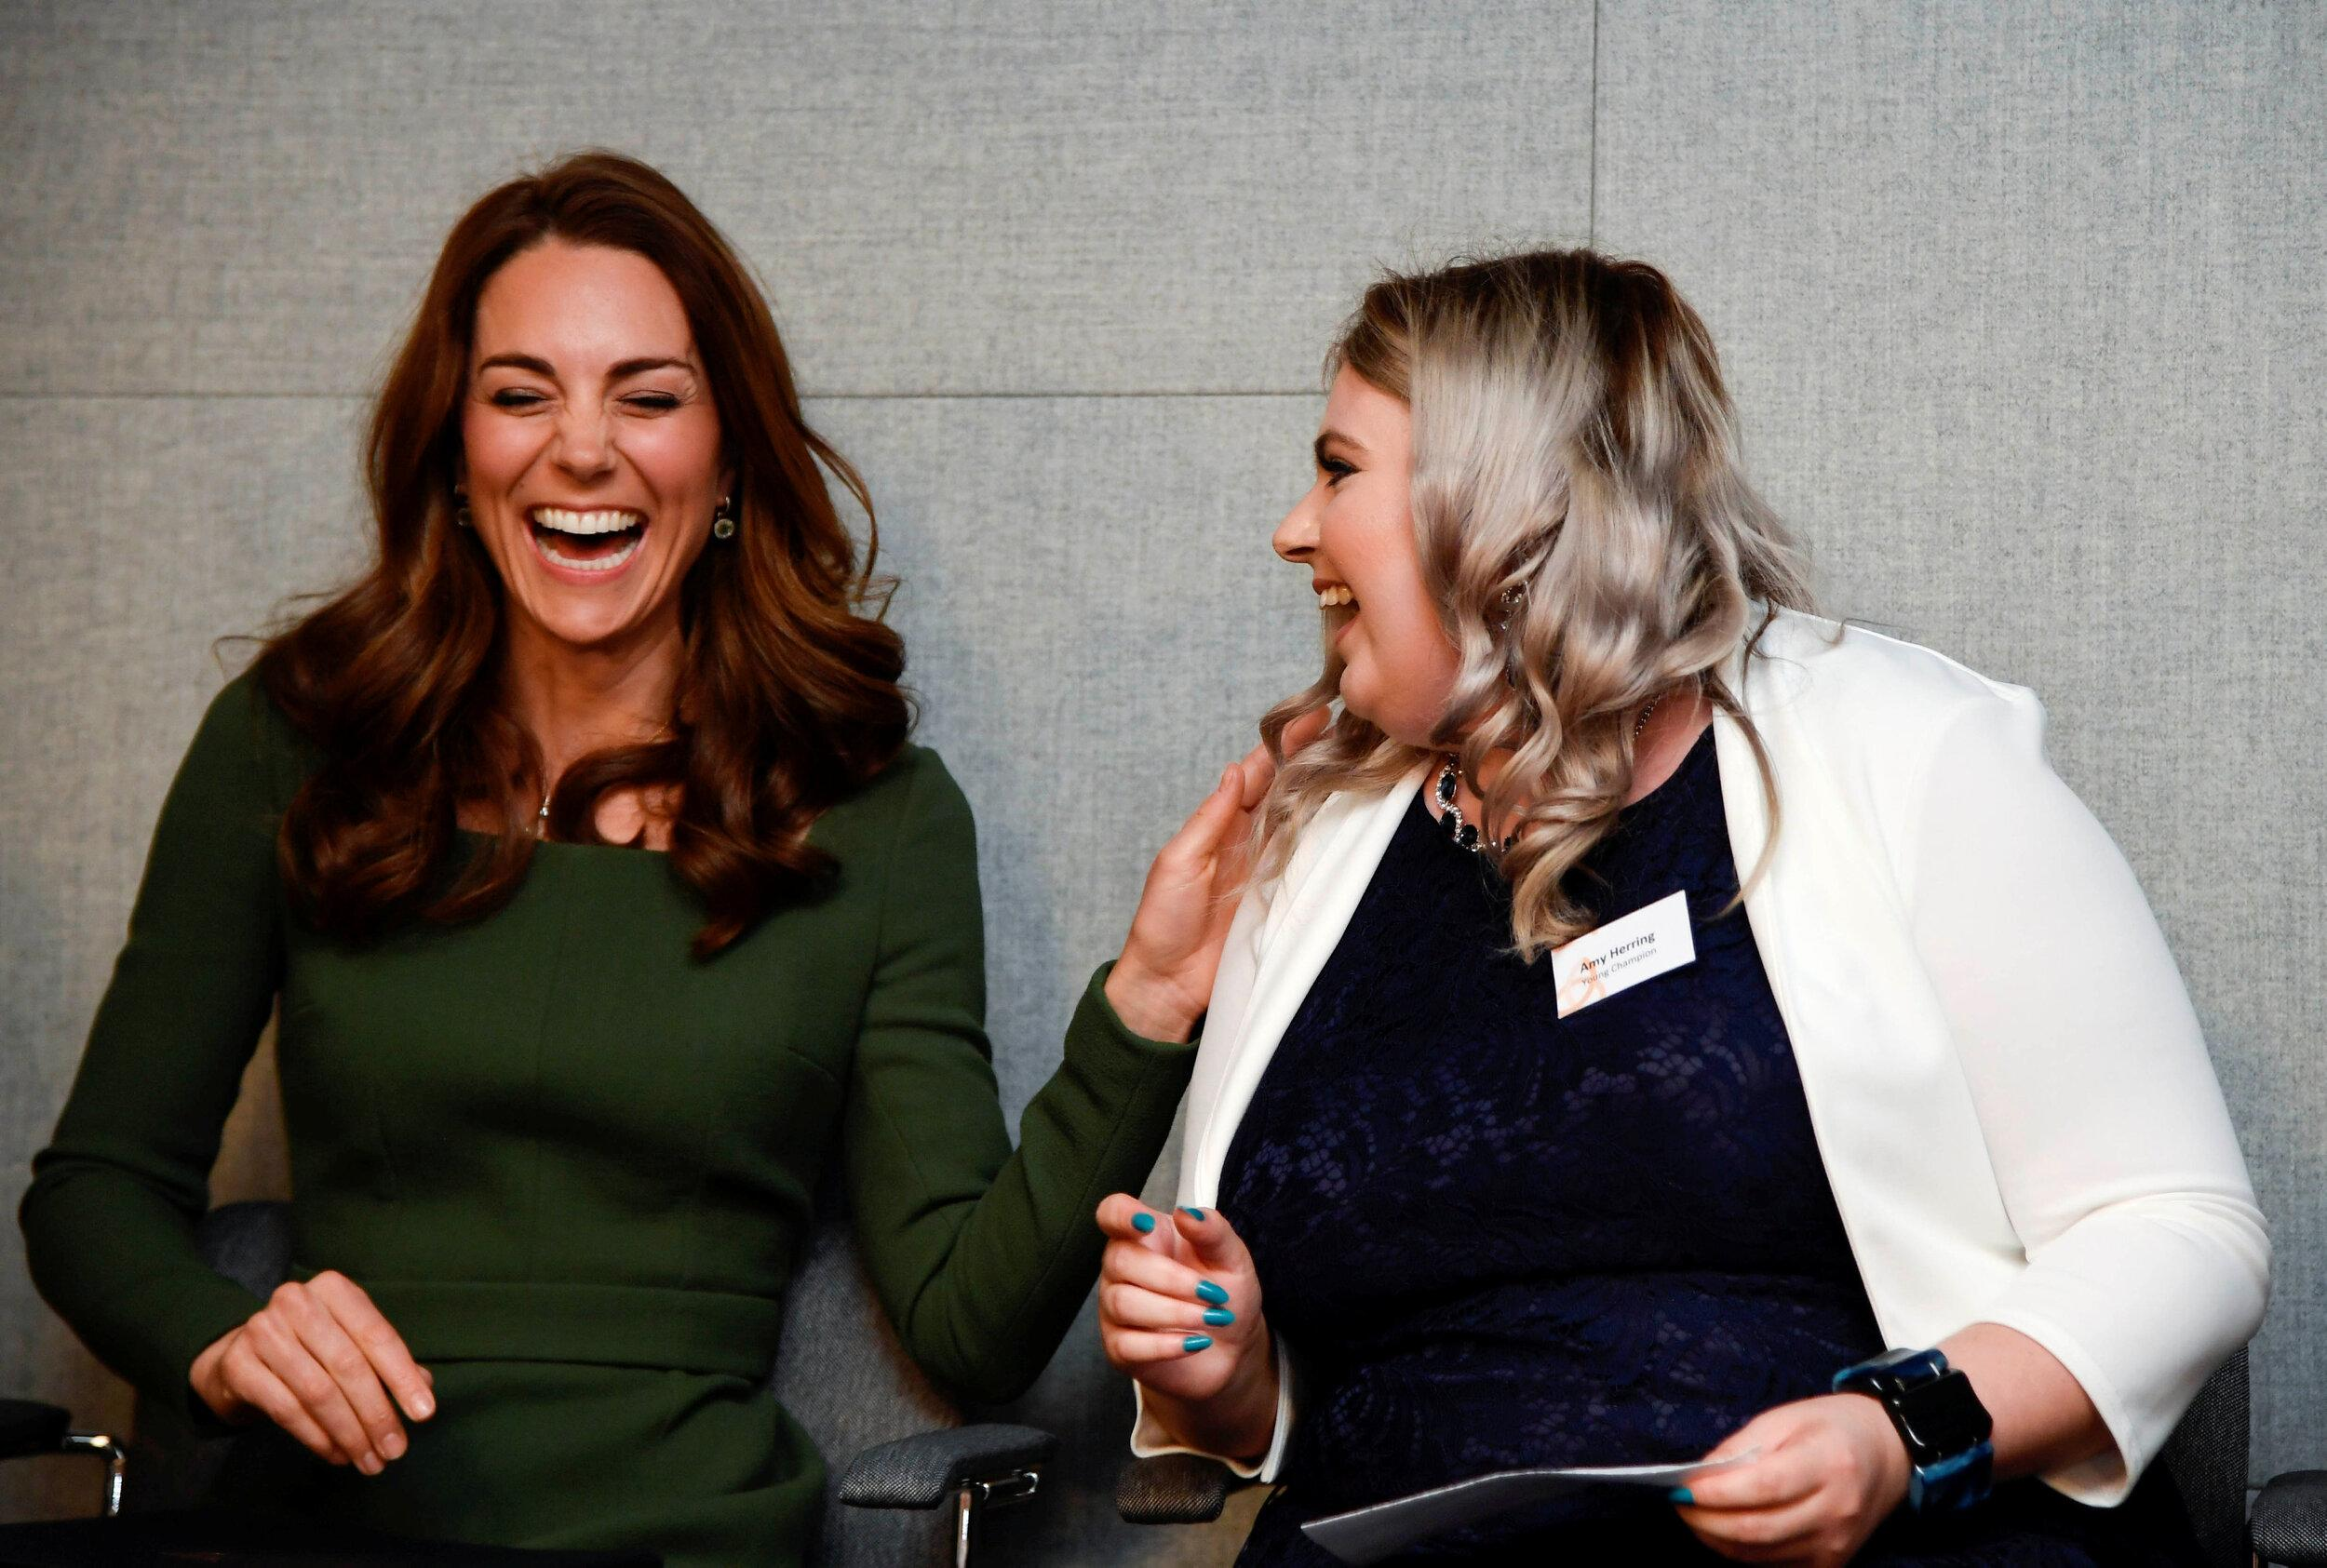 Britain's Catherine, Duchess of Cambridge shares a laugh with Amy Herring as she visits the Anna Freud National Centre for Children and Families in London on May 1, 2019. (Photo by TOBY MELVILLE / POOL / AFP)        (Photo credit should read TOBY MELVILLE/AFP/Getty Images)